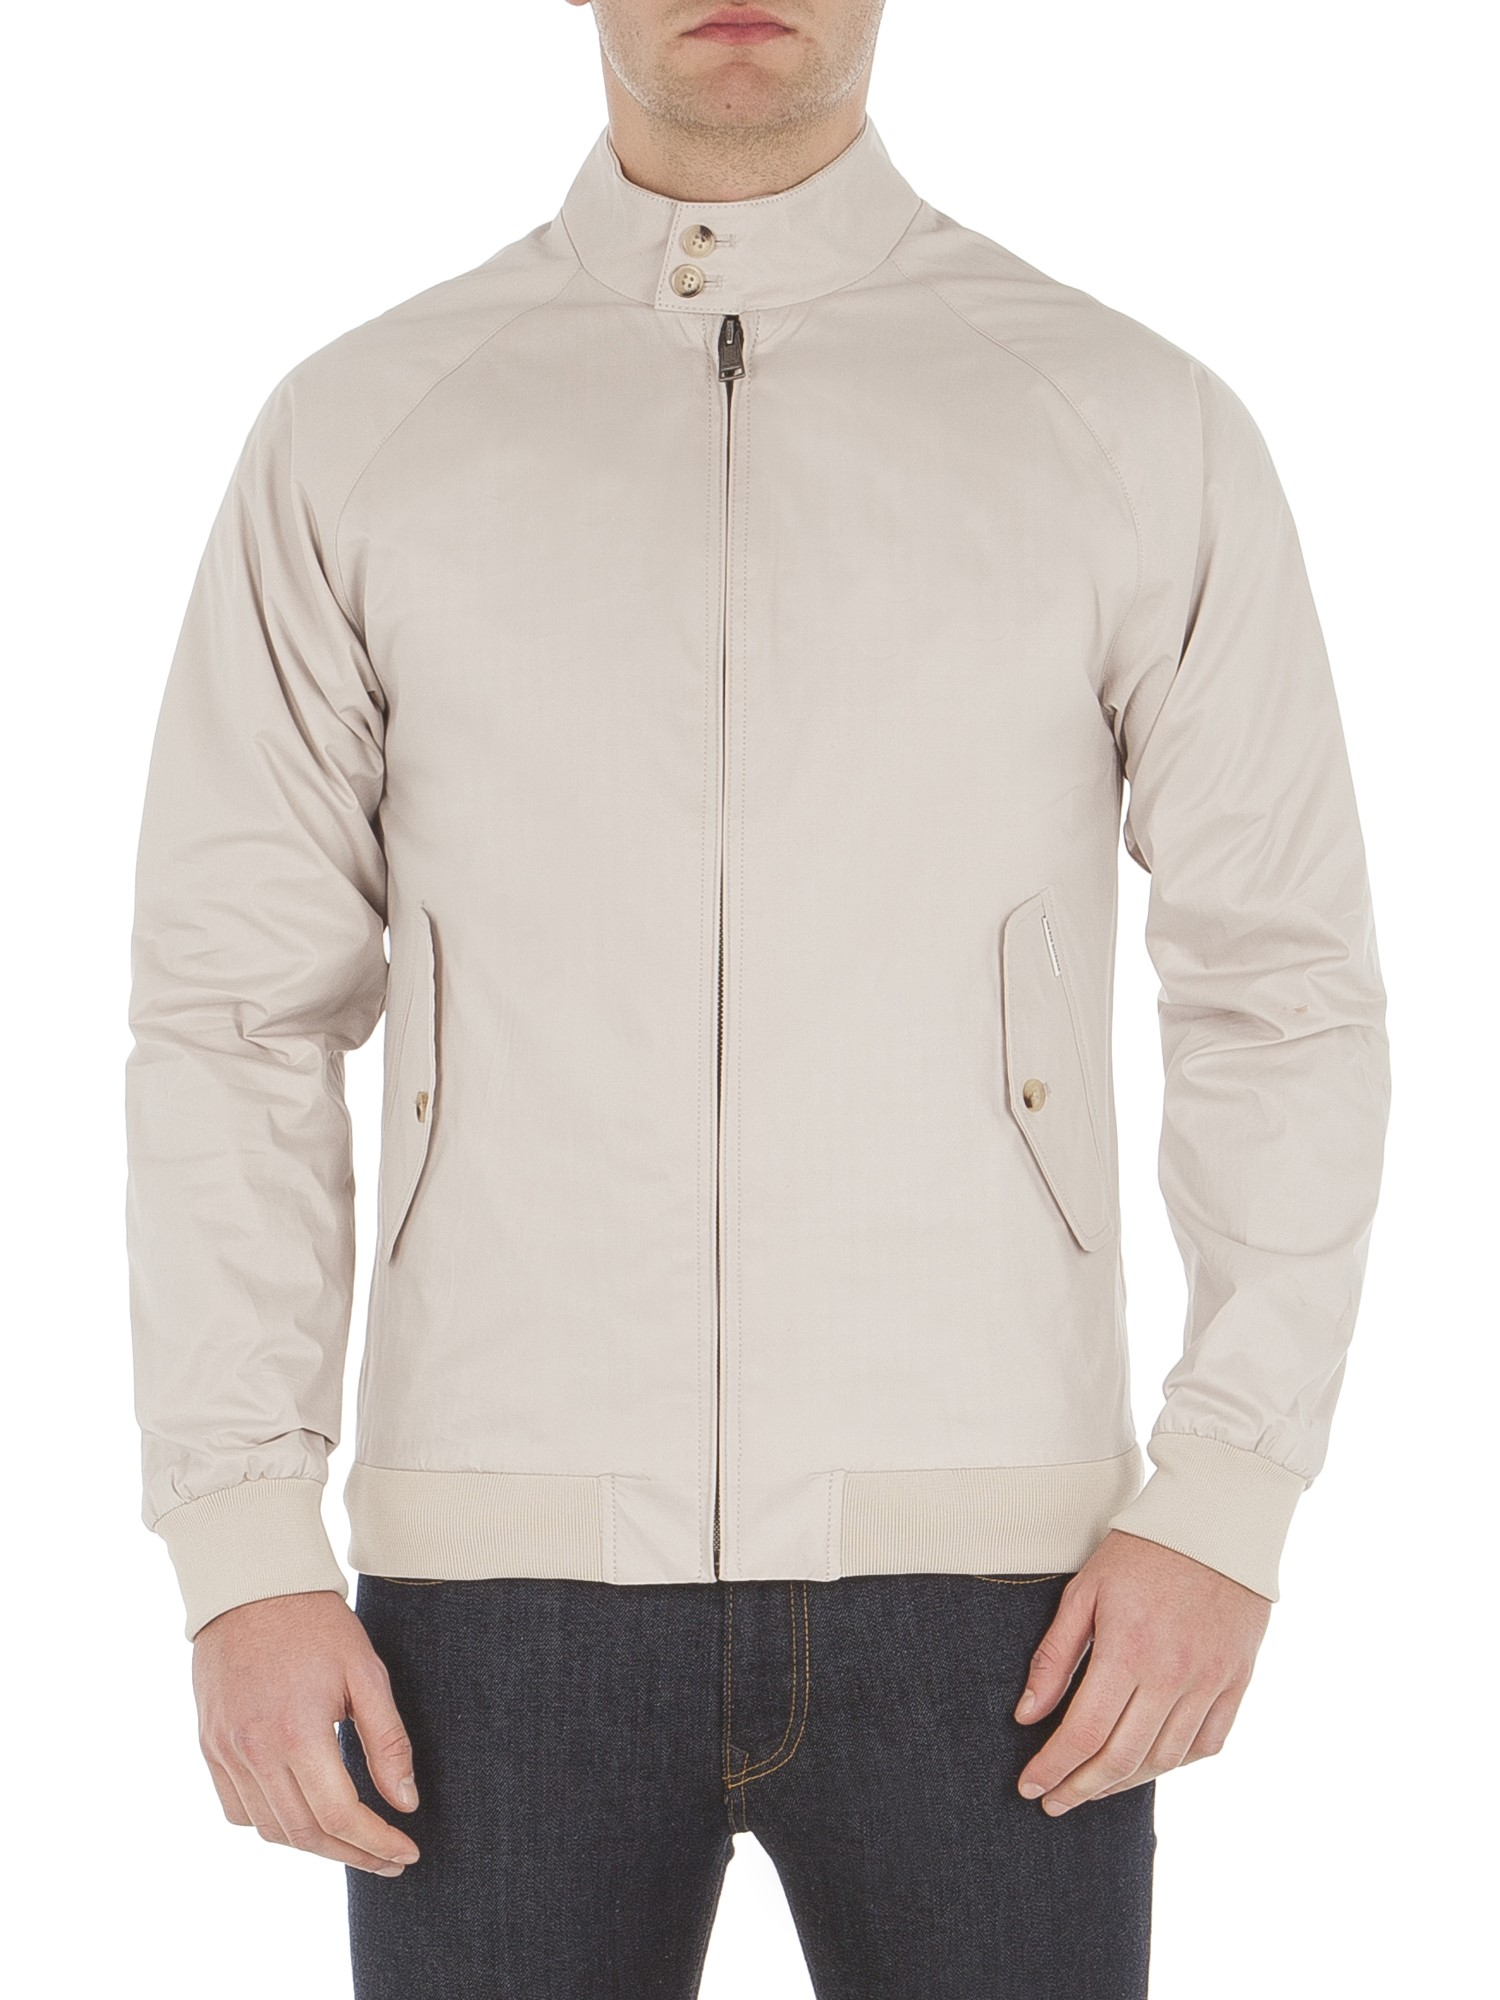 Ben Sherman Sand New Cotton Harrington